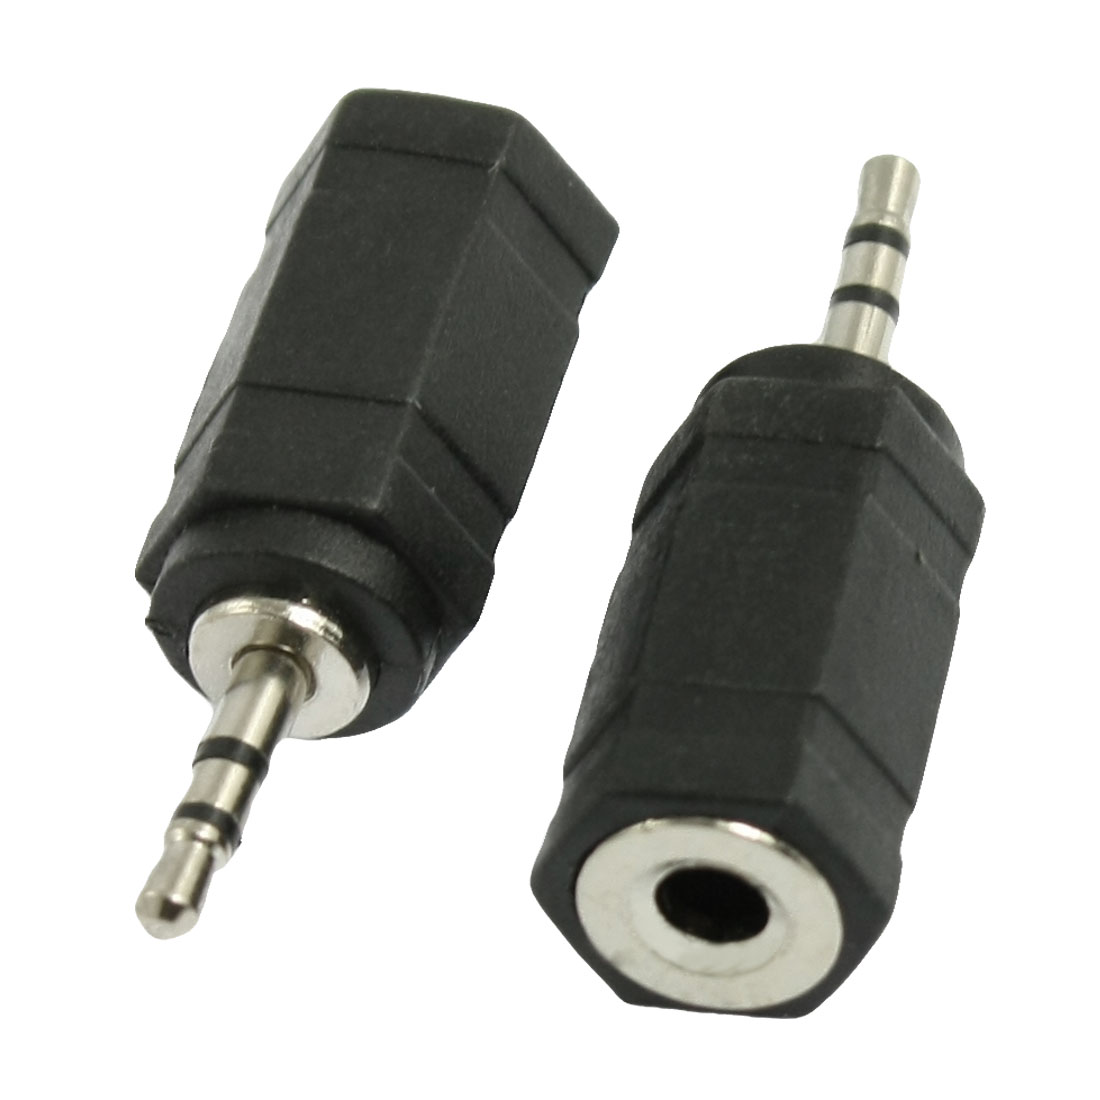 2 Pcs Black DC 3.5mm Female to 2.5mm Male Plug Adpater Connector